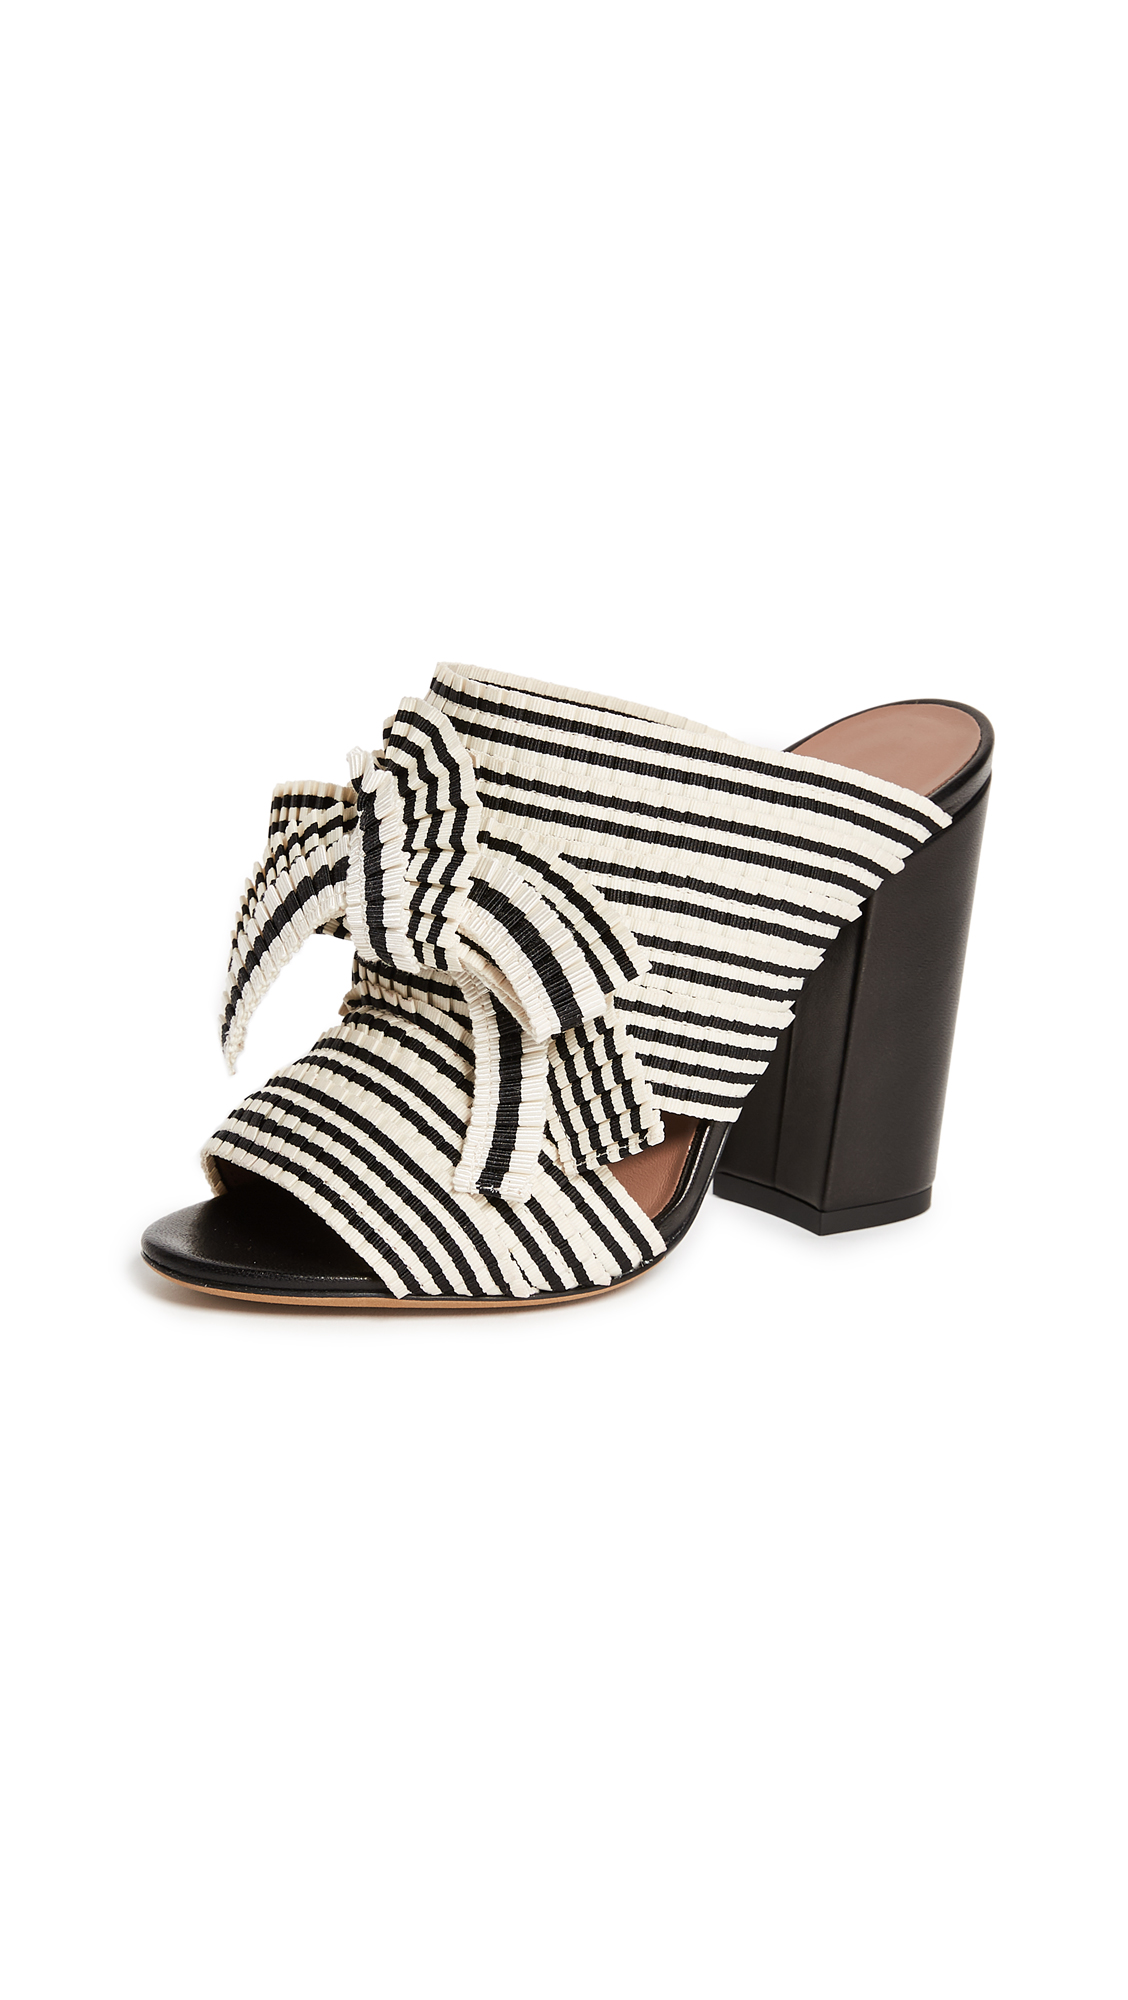 Tabitha Simmons Beau Mule Sandal Pumps - Black/White